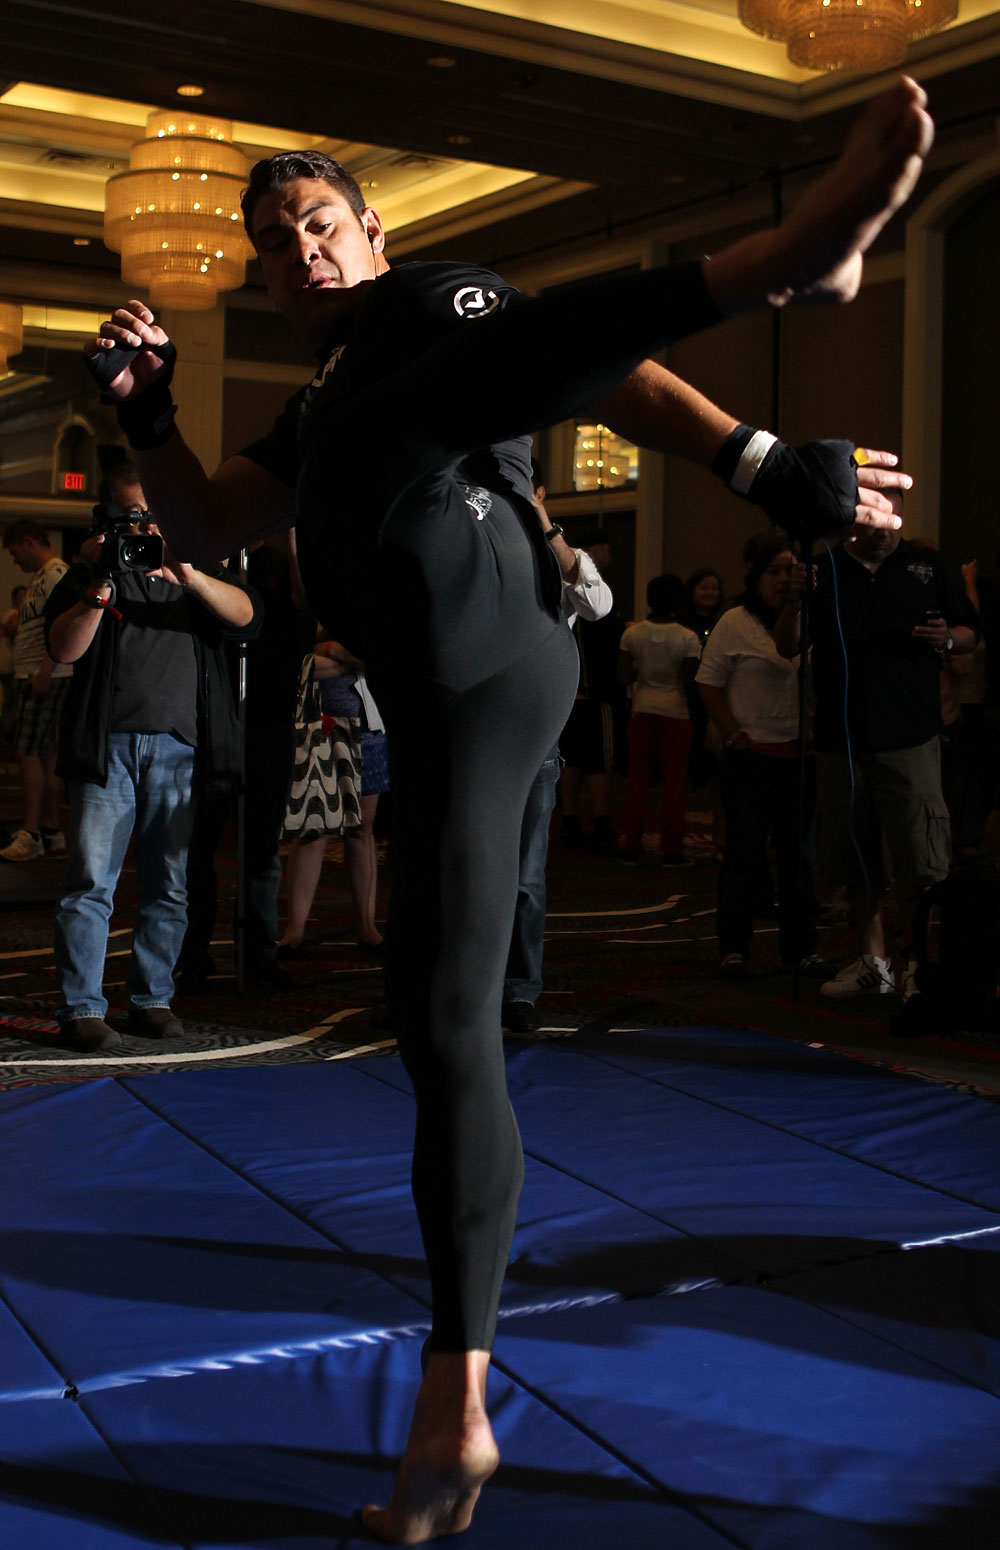 LAS VEGAS, NV - MAY 23:   Shane Del Rosario works out for the media and fans during the UFC 146 Open Workouts at MGM Grand on May 23, 2012 in Las Vegas, Nevada.  (Photo by Josh Hedges/Zuffa LLC/Zuffa LLC via Getty Images)